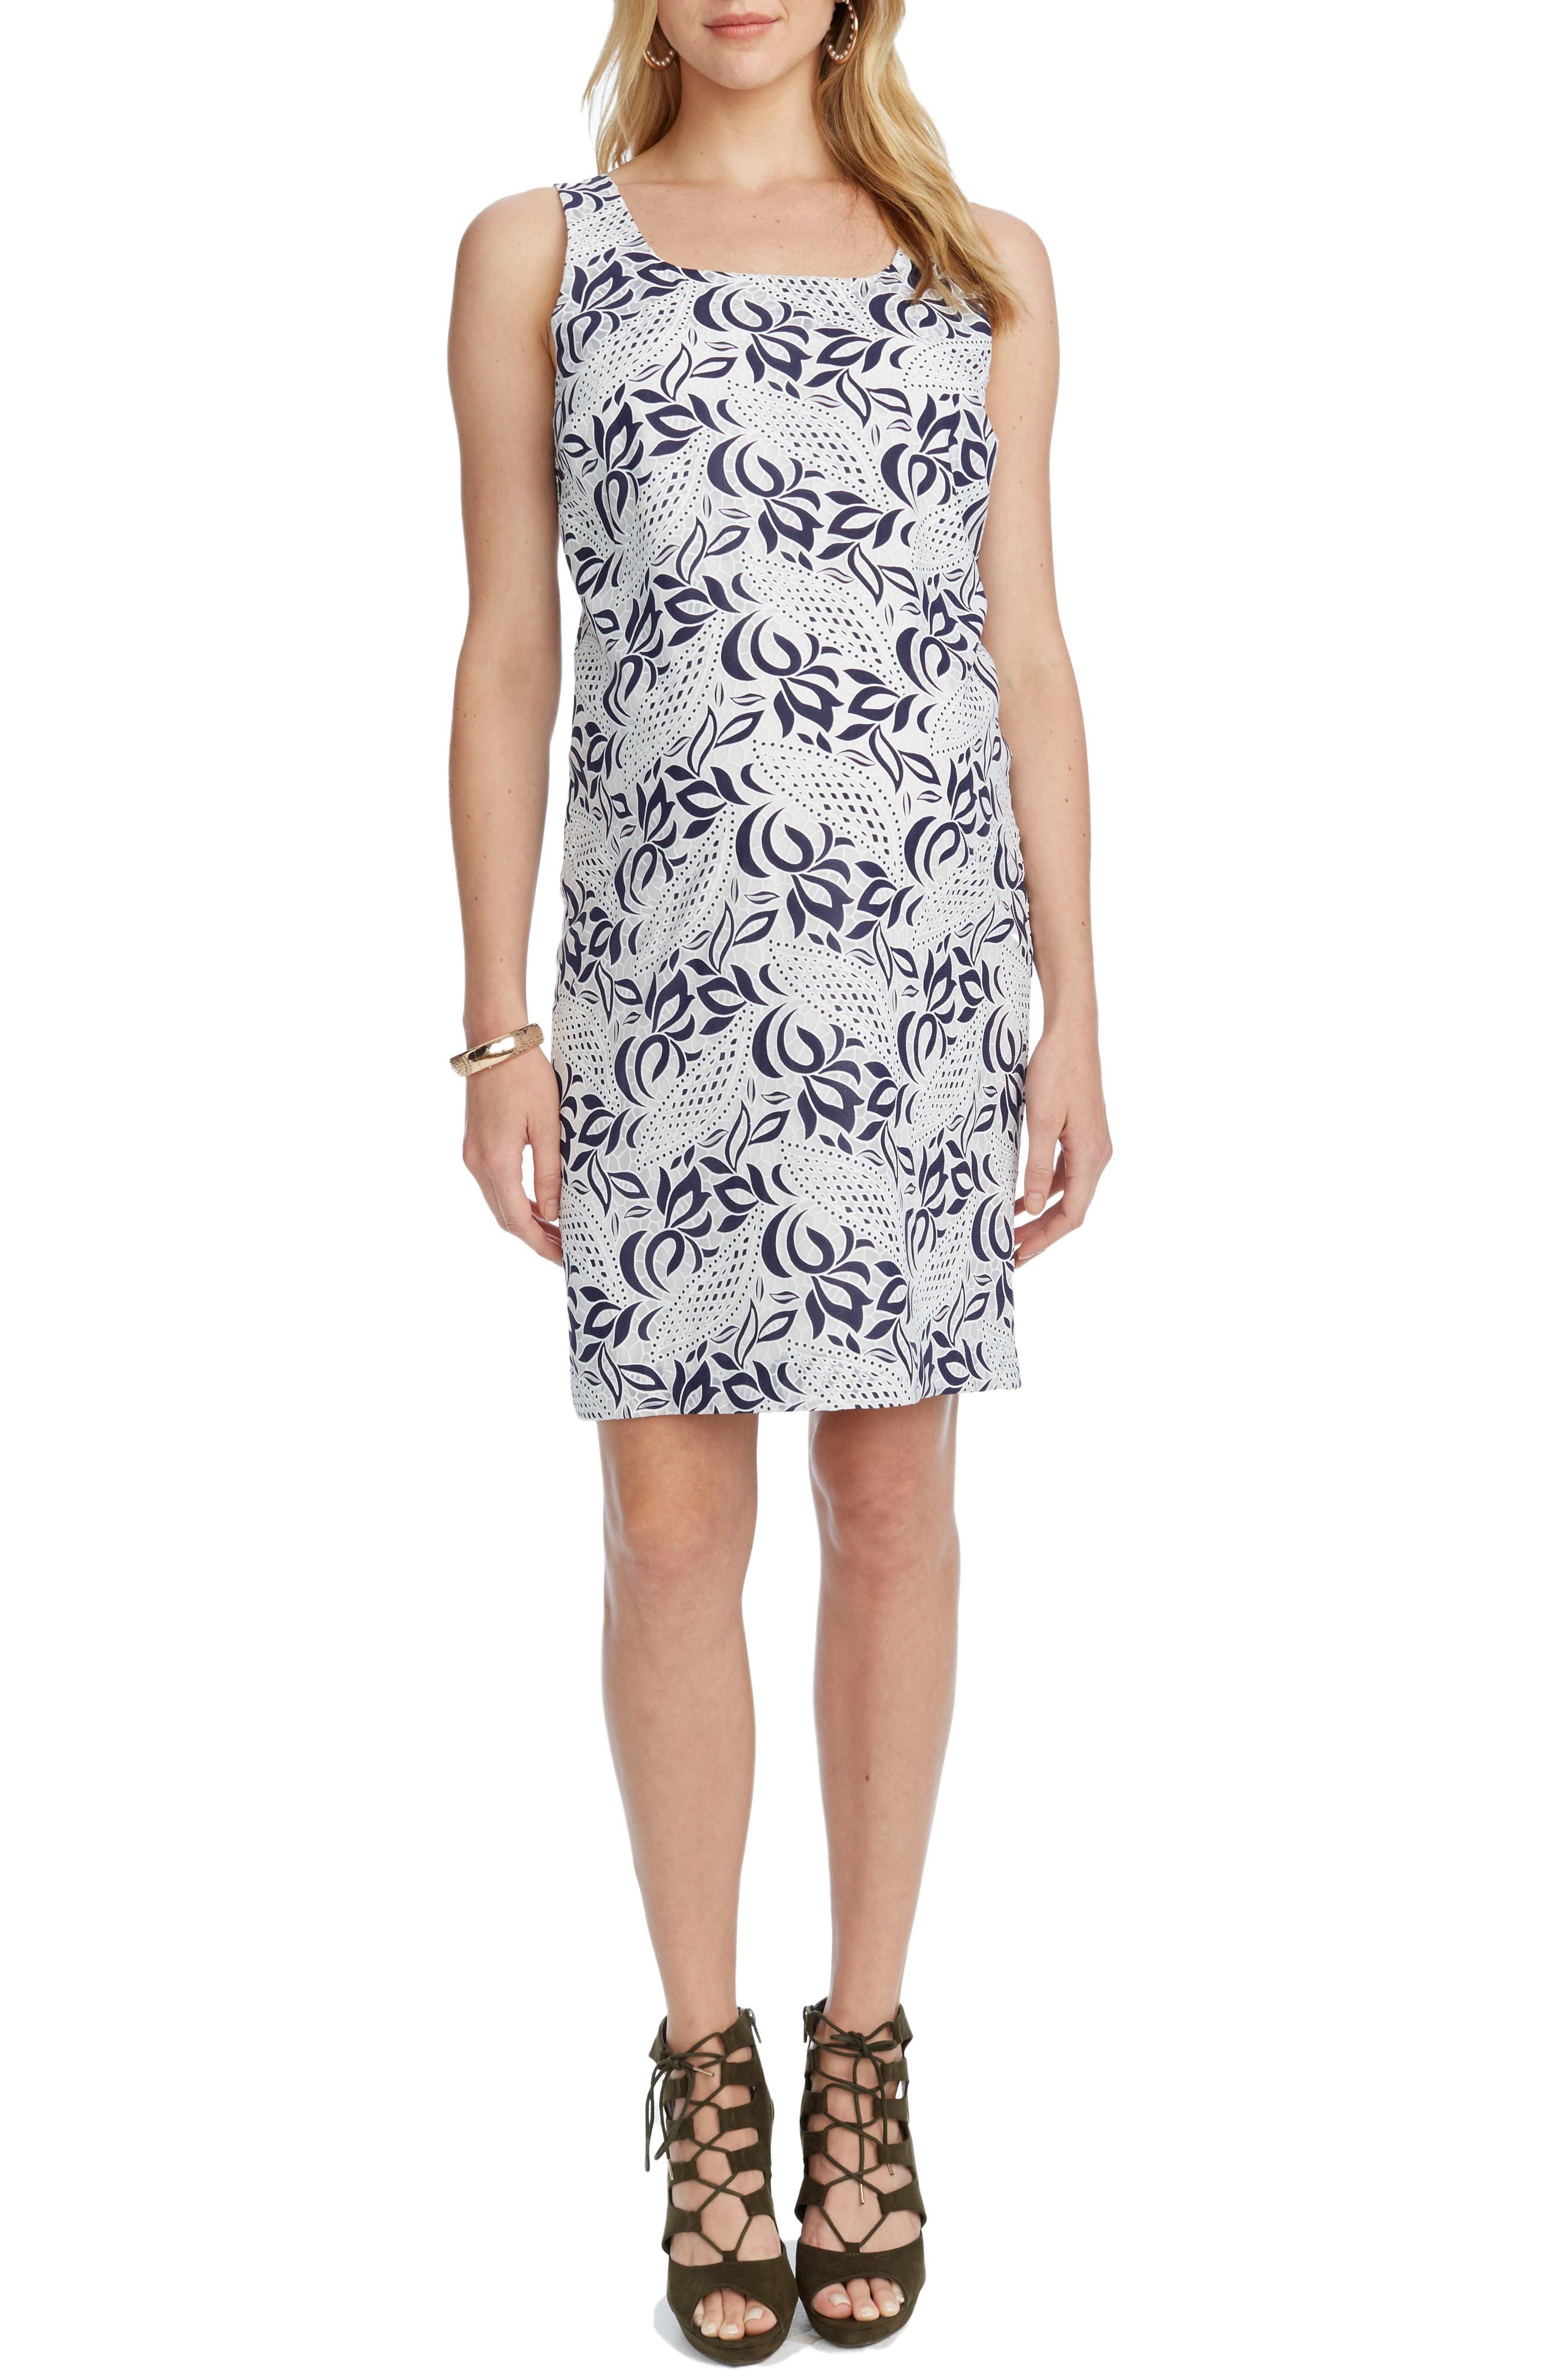 Rosie Pope 'Victoria' Lace Sleeveless Maternity Dress